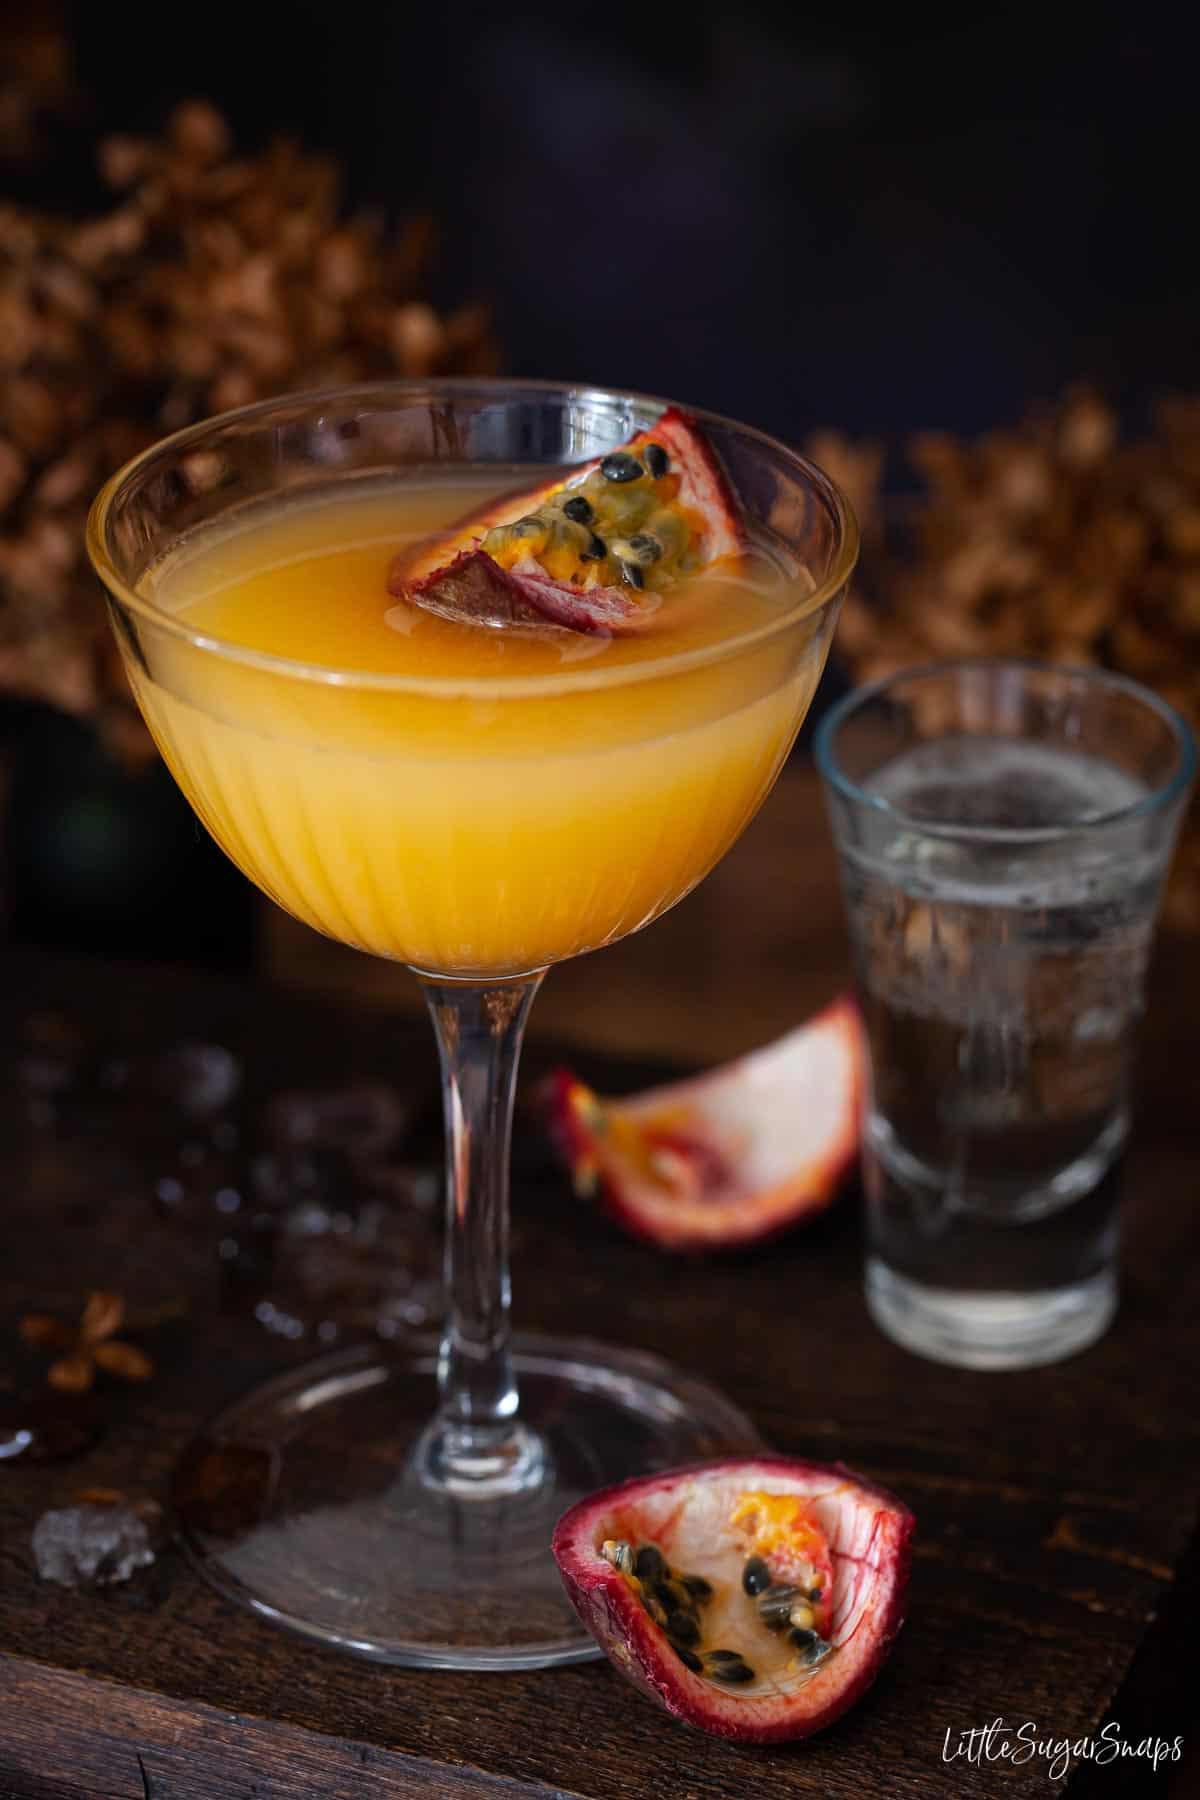 Passionfruit martini topped with fresh passionfruit and served with a glass of Prosecco